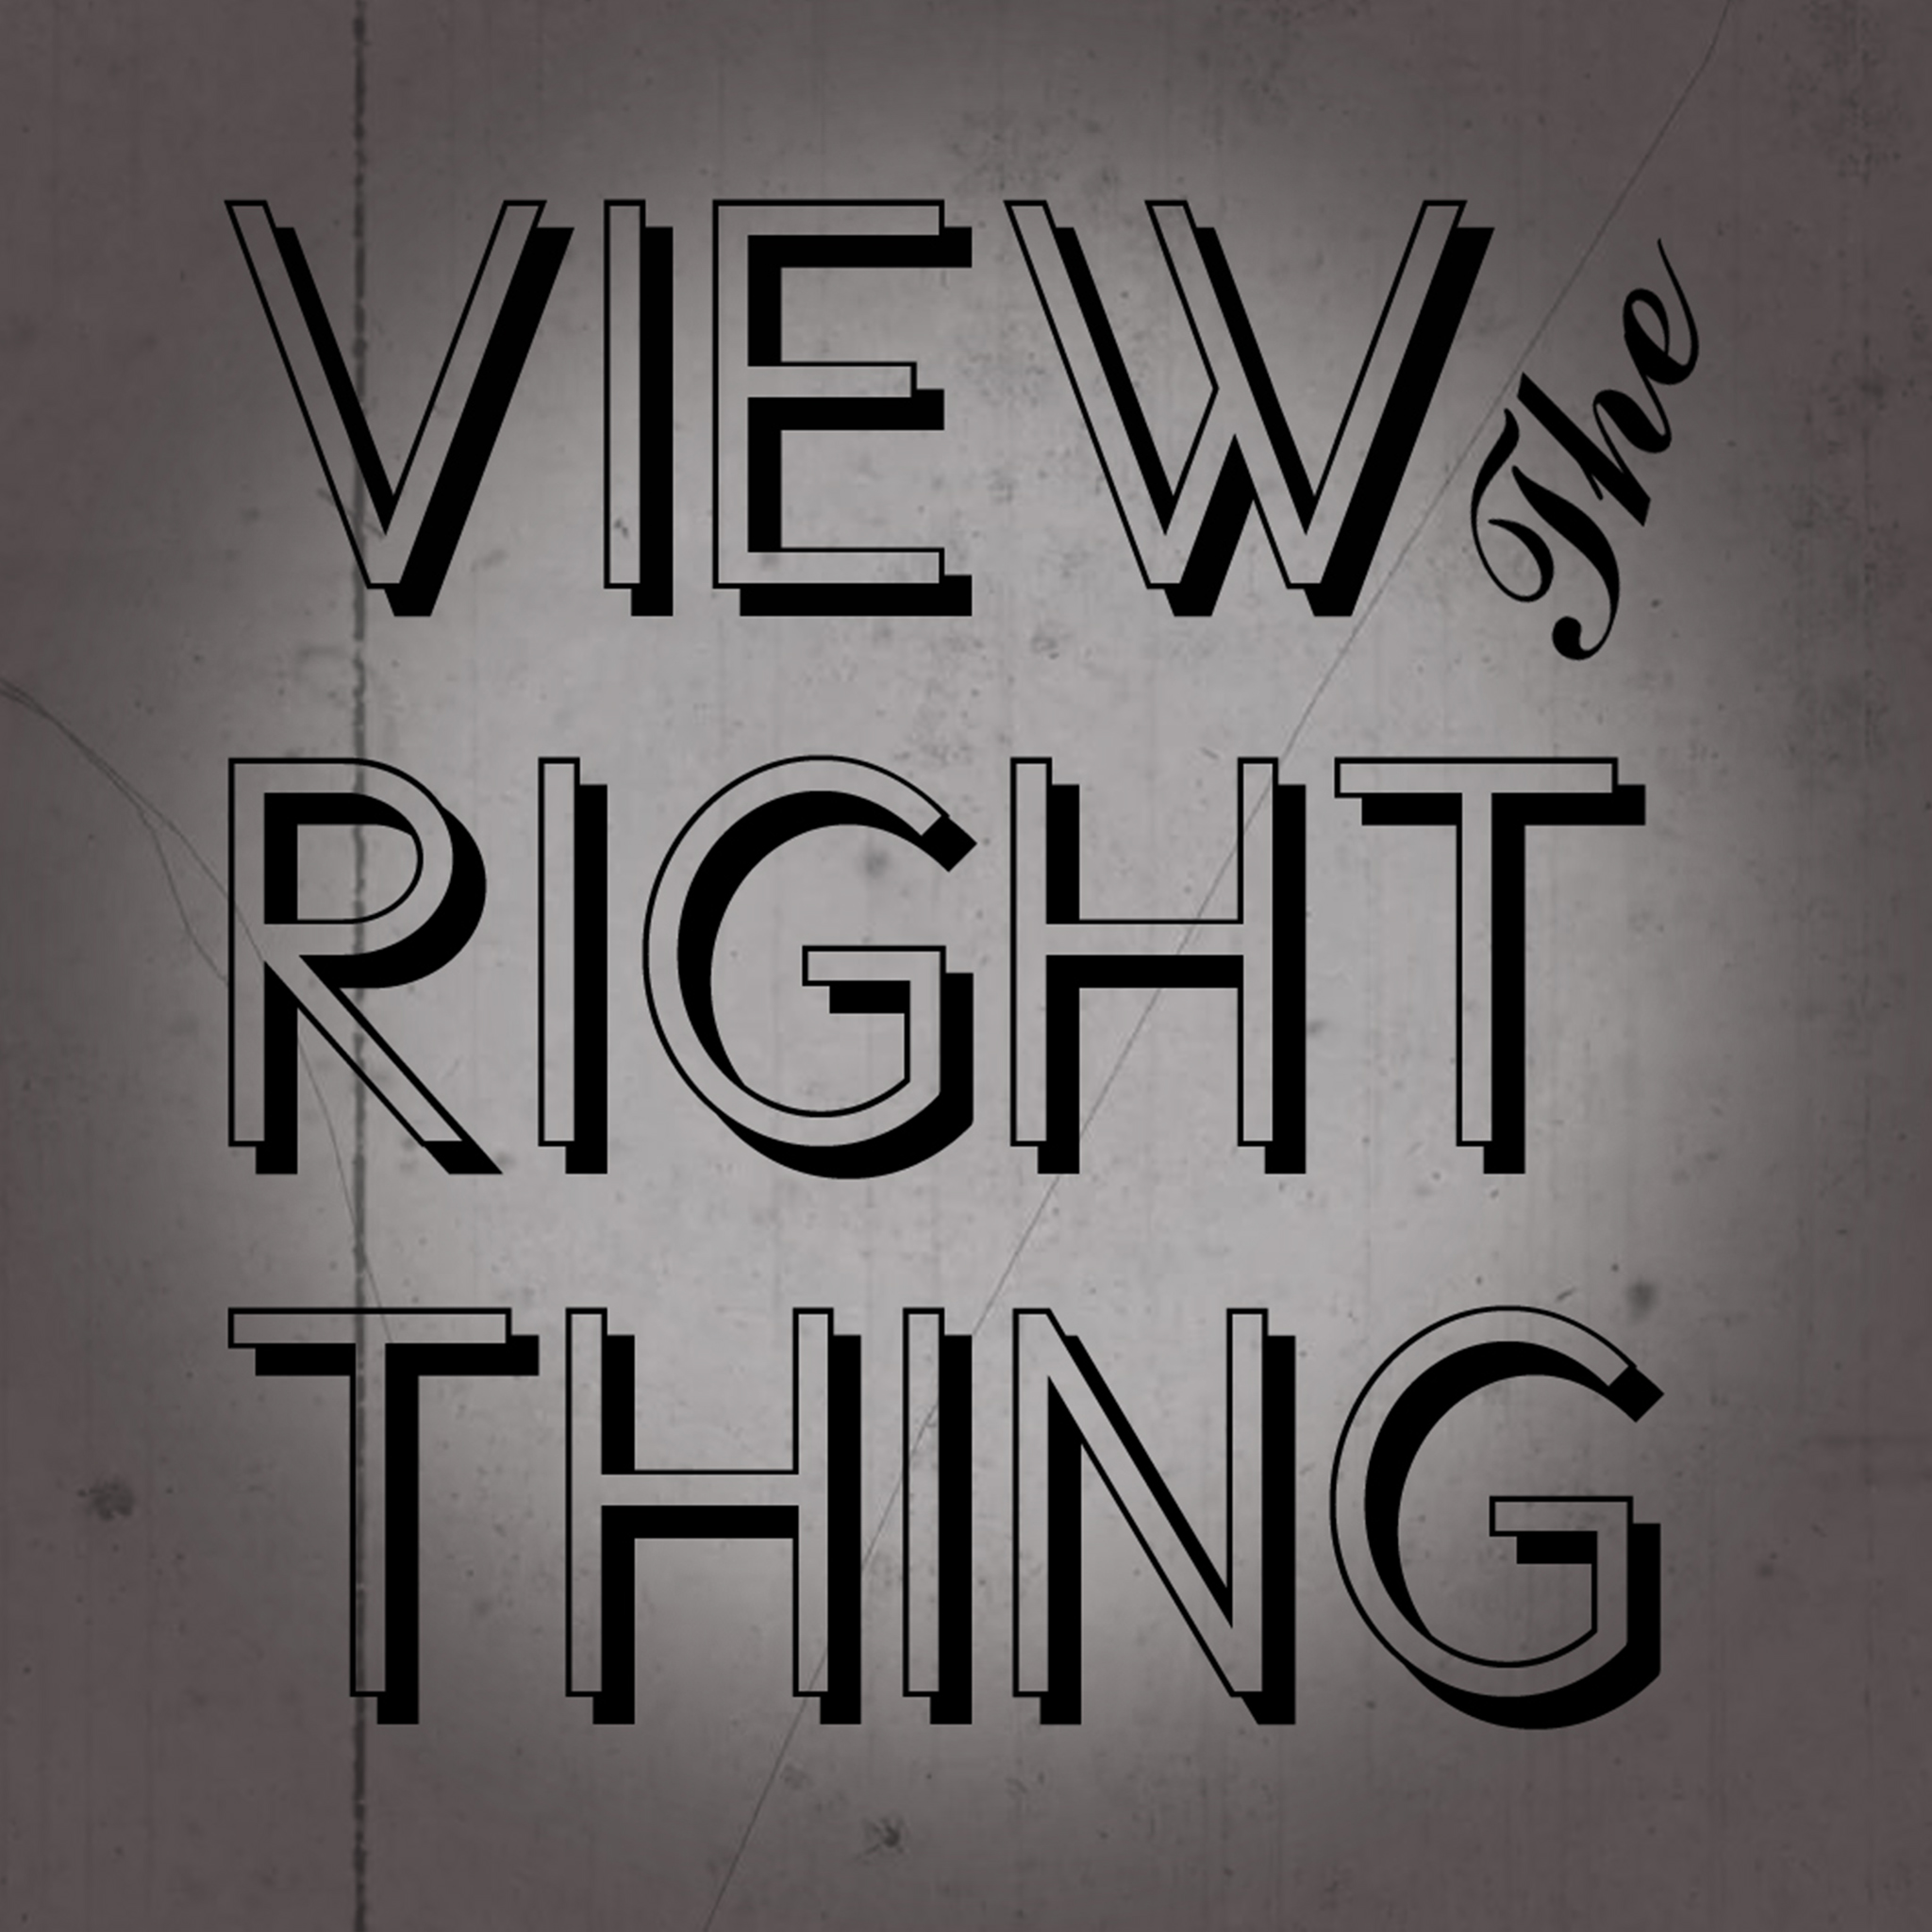 View the Right Thing